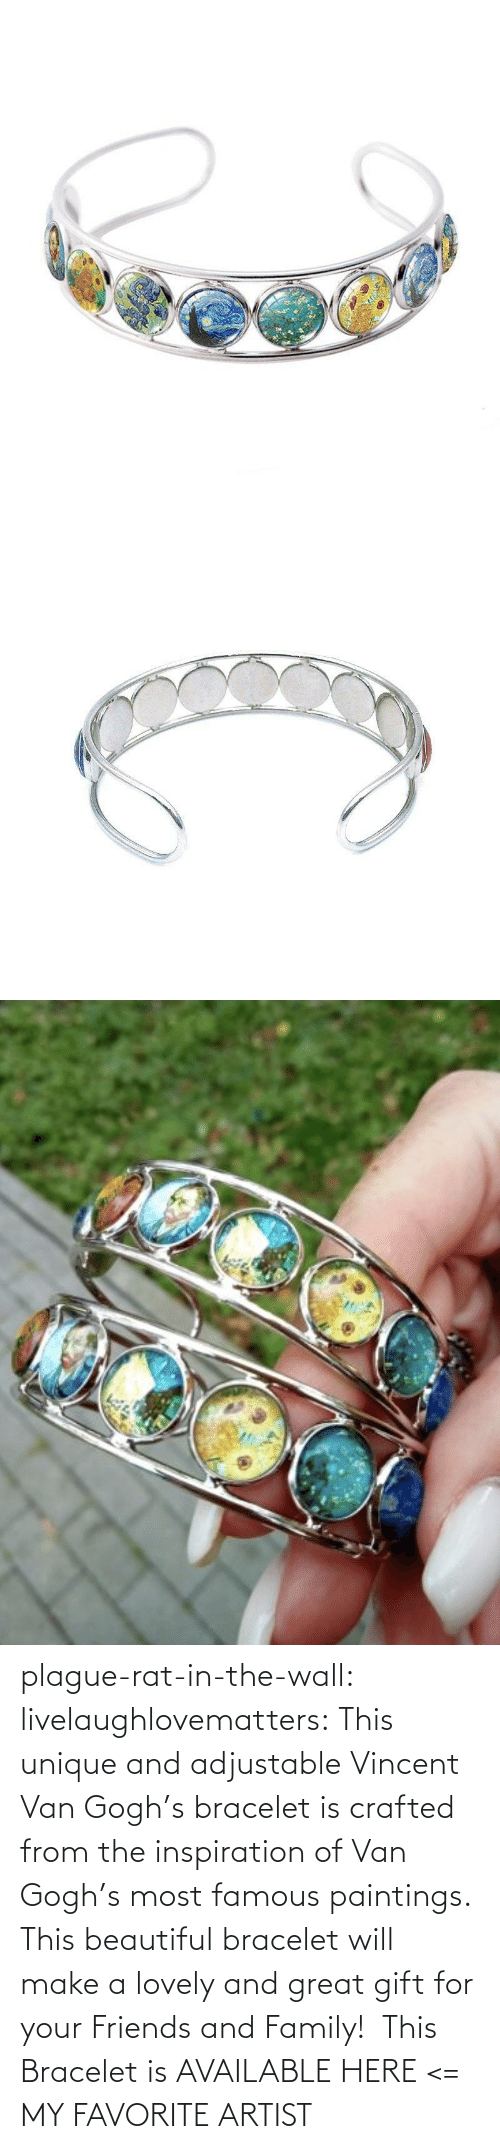 Inspiration: plague-rat-in-the-wall:  livelaughlovematters: This unique and adjustable Vincent Van Gogh's bracelet is crafted from the inspiration of Van Gogh's most famous paintings. This beautiful bracelet will make a lovely and great gift for your Friends and Family!  This Bracelet is AVAILABLE HERE <=  MY FAVORITE ARTIST